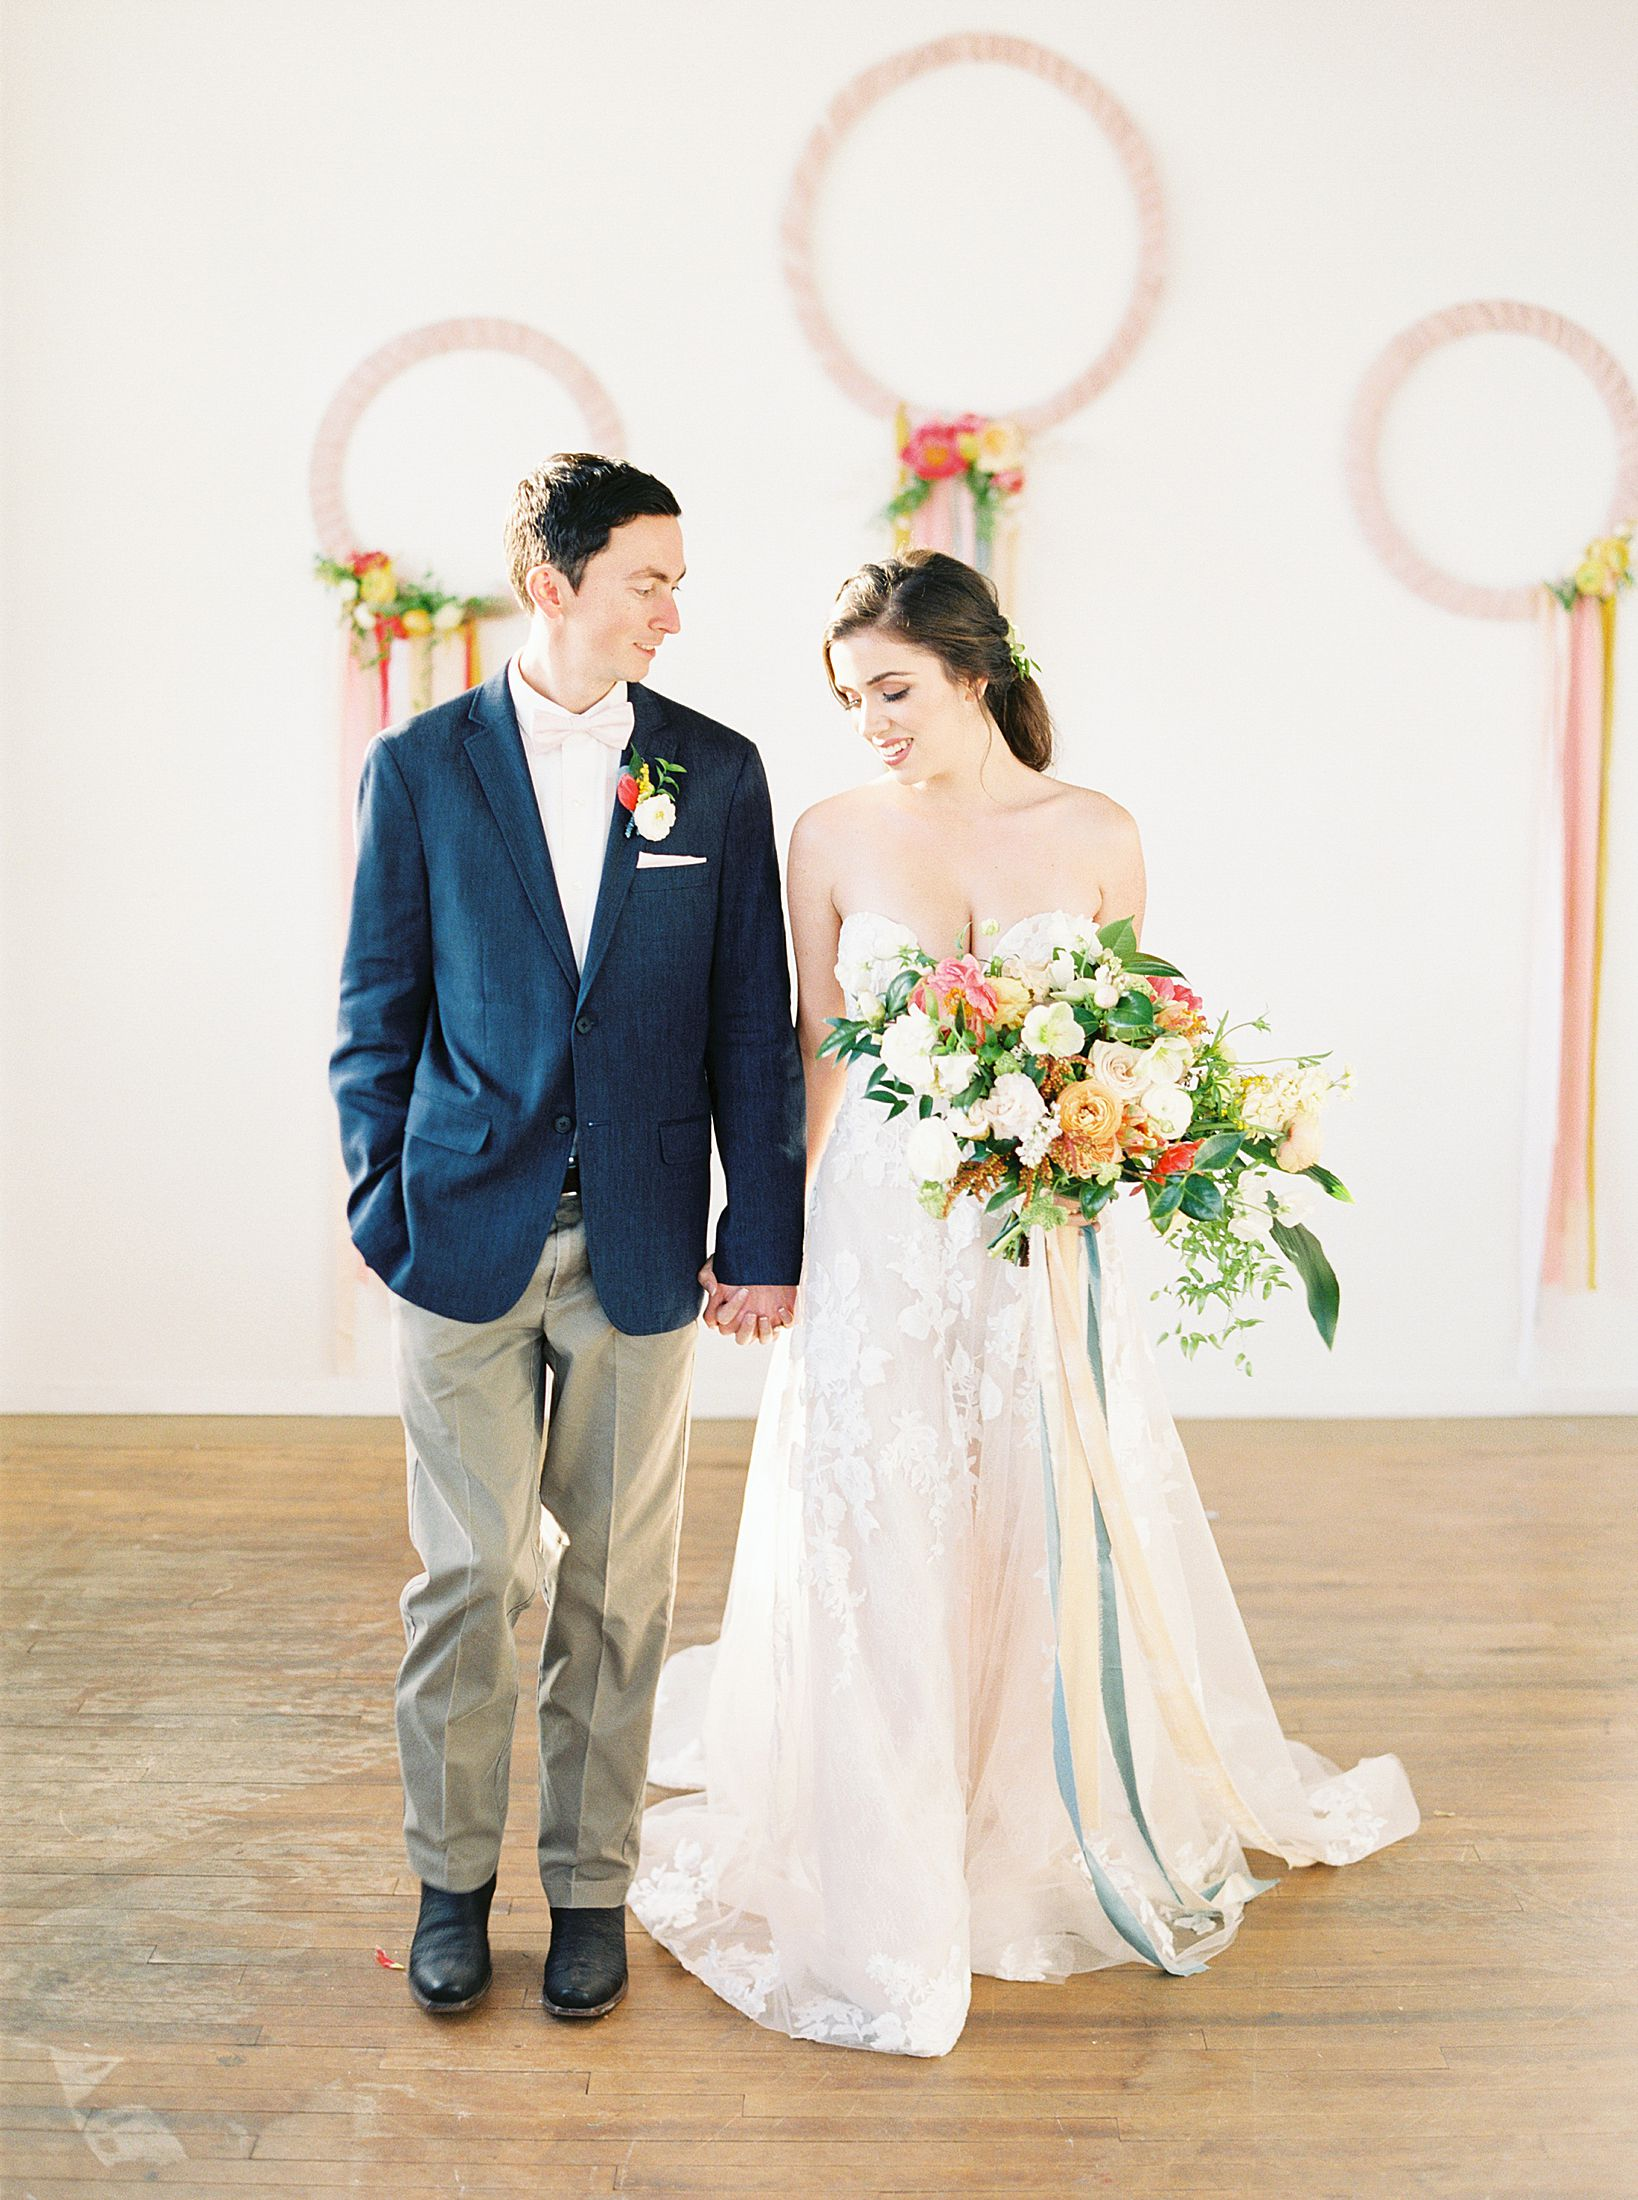 Bay Area Spring Wedding Inspiration - Ashley Baumgartner - Inspired By This - Party Crush Studio and Lens of Lenox Videography - Bay Area Wedding Photography_0044.jpg